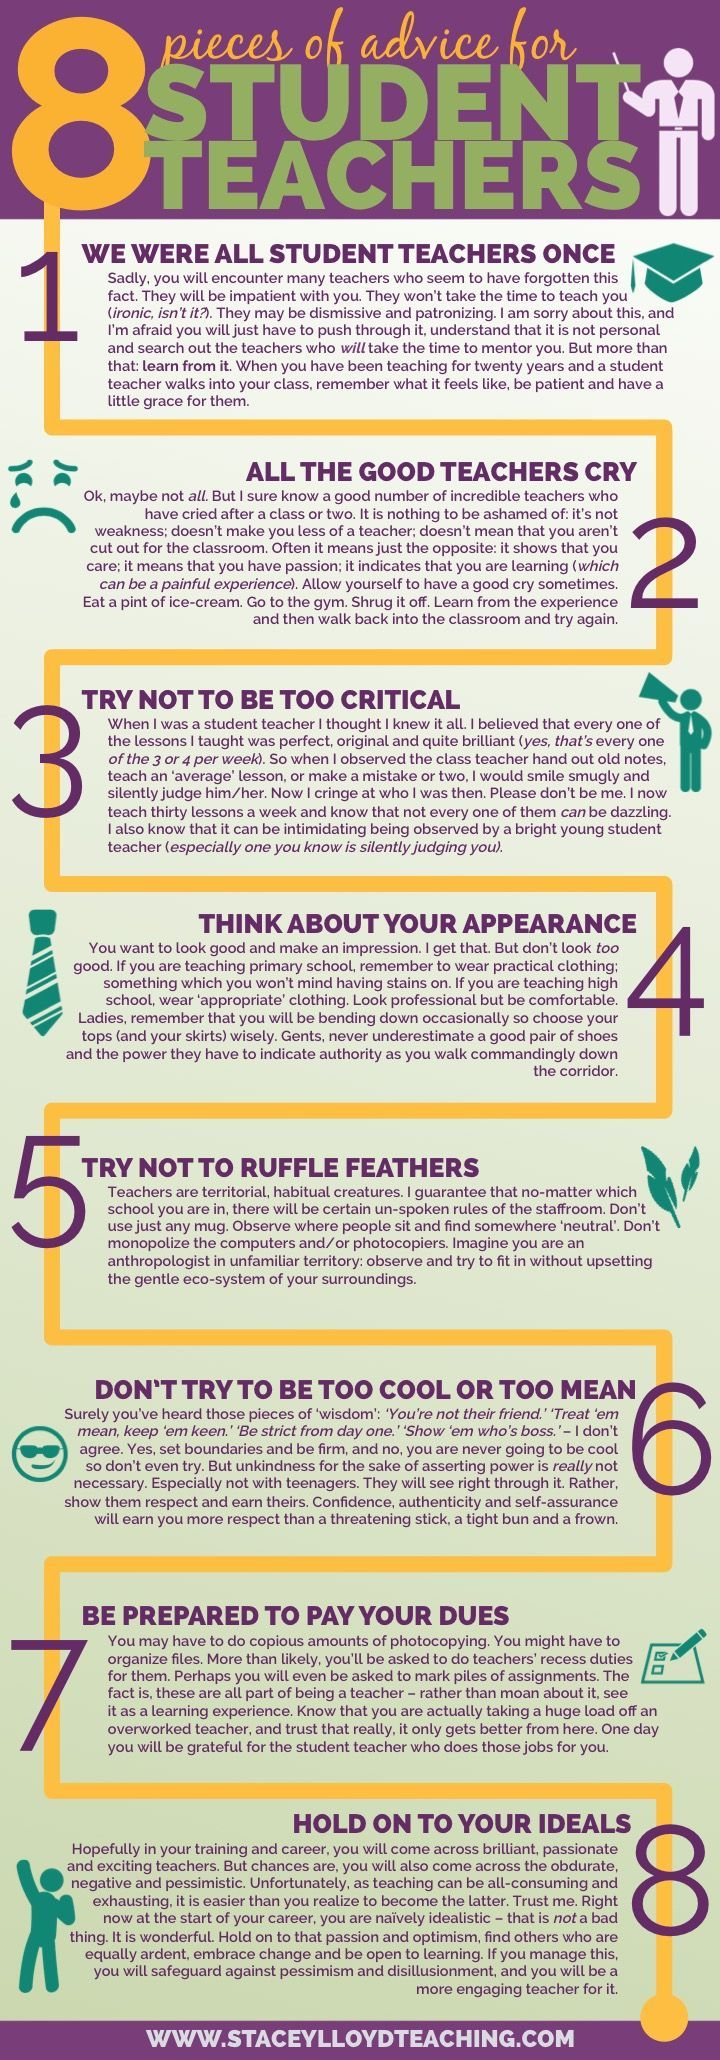 8 Pieces of Advice for Student Teachers Infographic